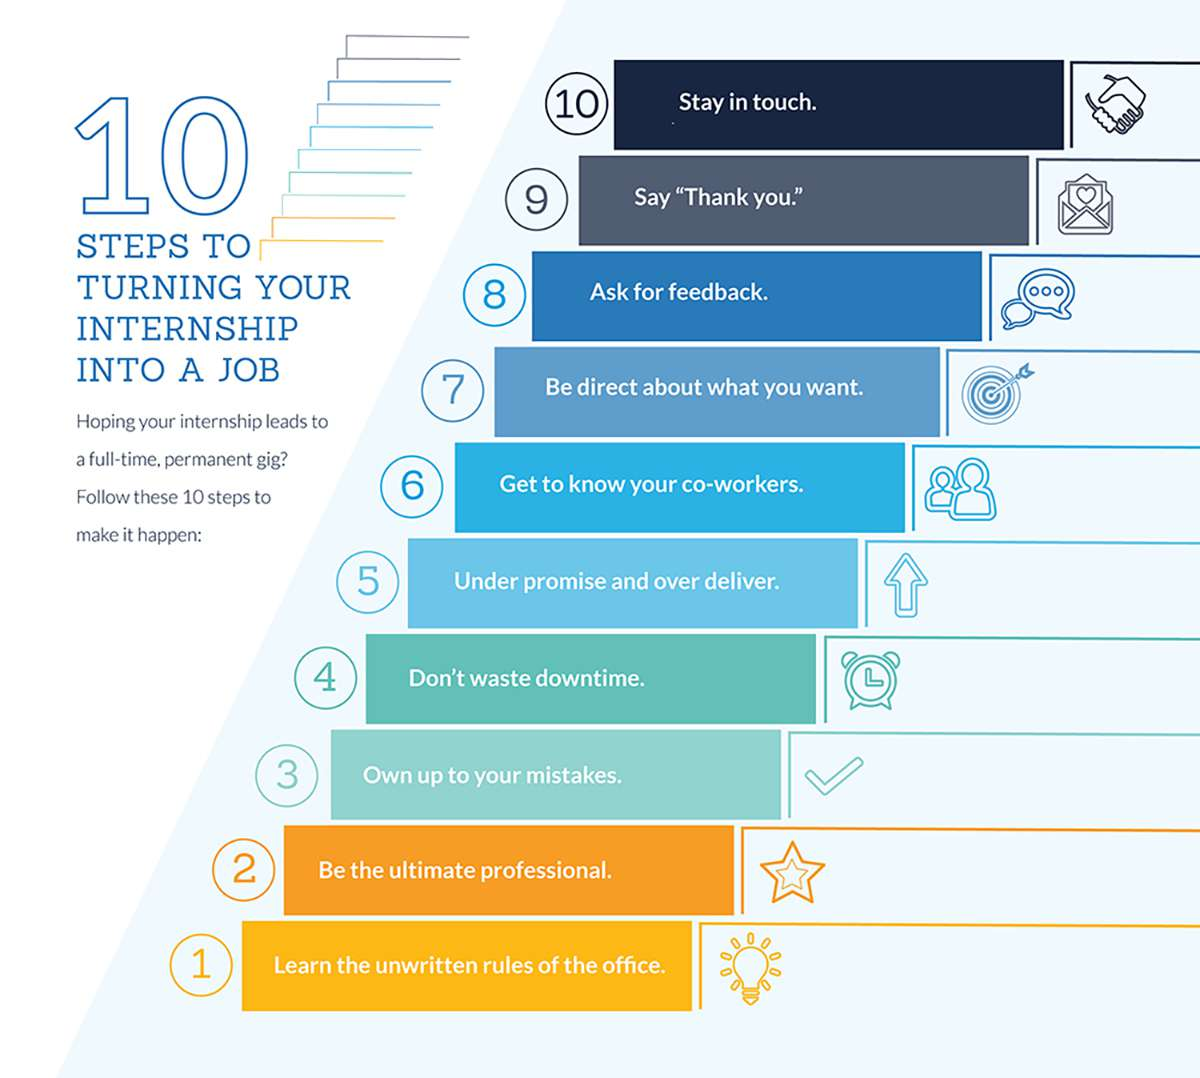 Amazing 1 Year Experience Resume Format For Dot Net Small 100 Greatest Resume Words Rectangular 1099 Misc Form Template 15 Year Old First Resume Old 15 Year Old Resume Purple1st Job Resume Template 10 Steps To Turning Your Internship Into A Job   CareerBuilder